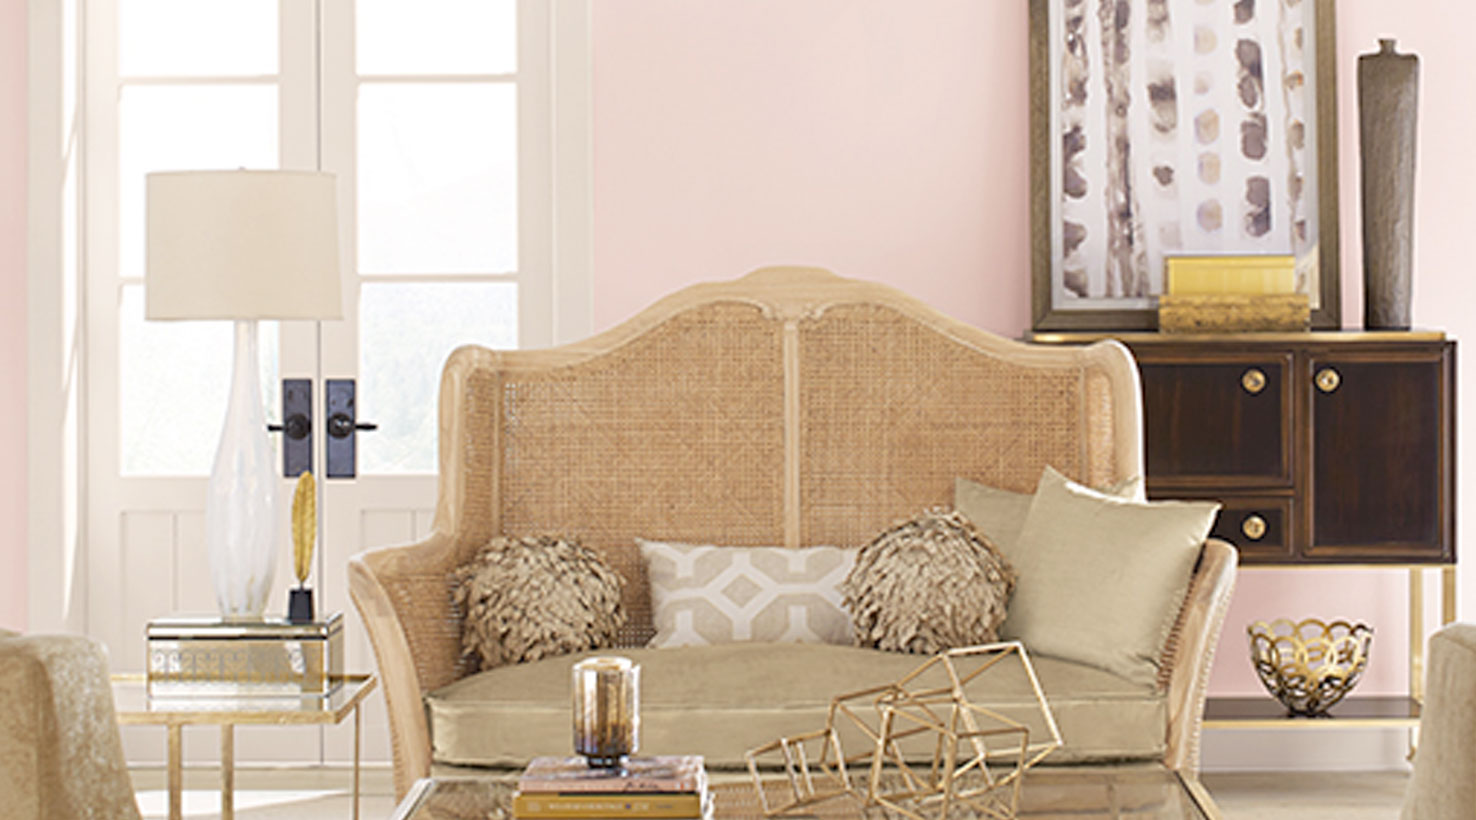 Sitting Room Paint Color Ideas | Inspiration Gallery | Sherwin-Williams